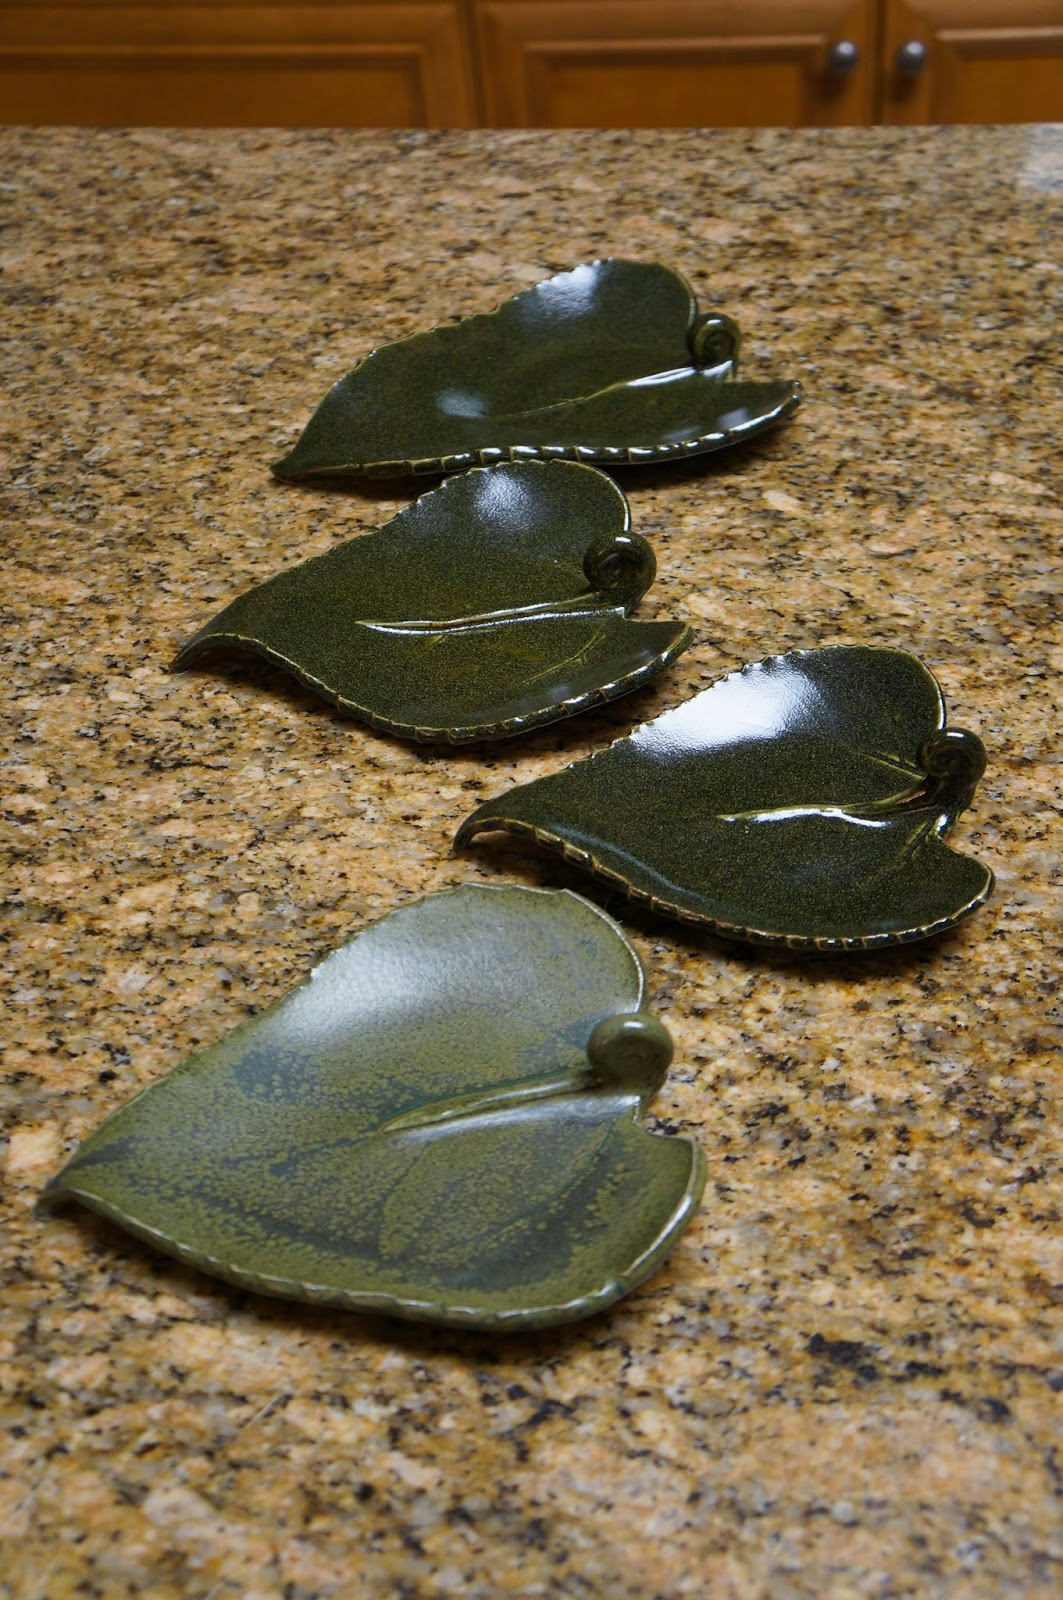 Beautiful unique handmade ceramic dishes made from real sunflower leaves.